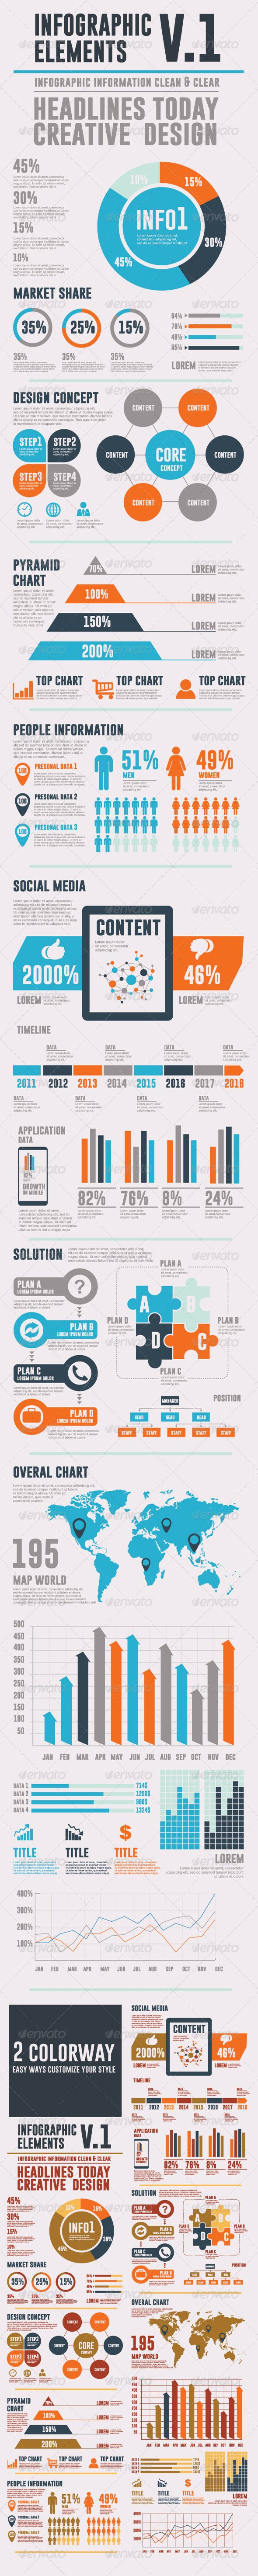 https://social-media-strategy-template.blogspot.com/ #SocialMedia Infographic Elements V.1 business, chart, conceptual, corporate, creative, data, diagram, display, element, graph, icon, infographic, information, layout, line graph, market, modern, pie, presentation, process, project, retro, shape, social network, statistics, symbol, template, timeline, vector, world map, Infographic Elements V.1